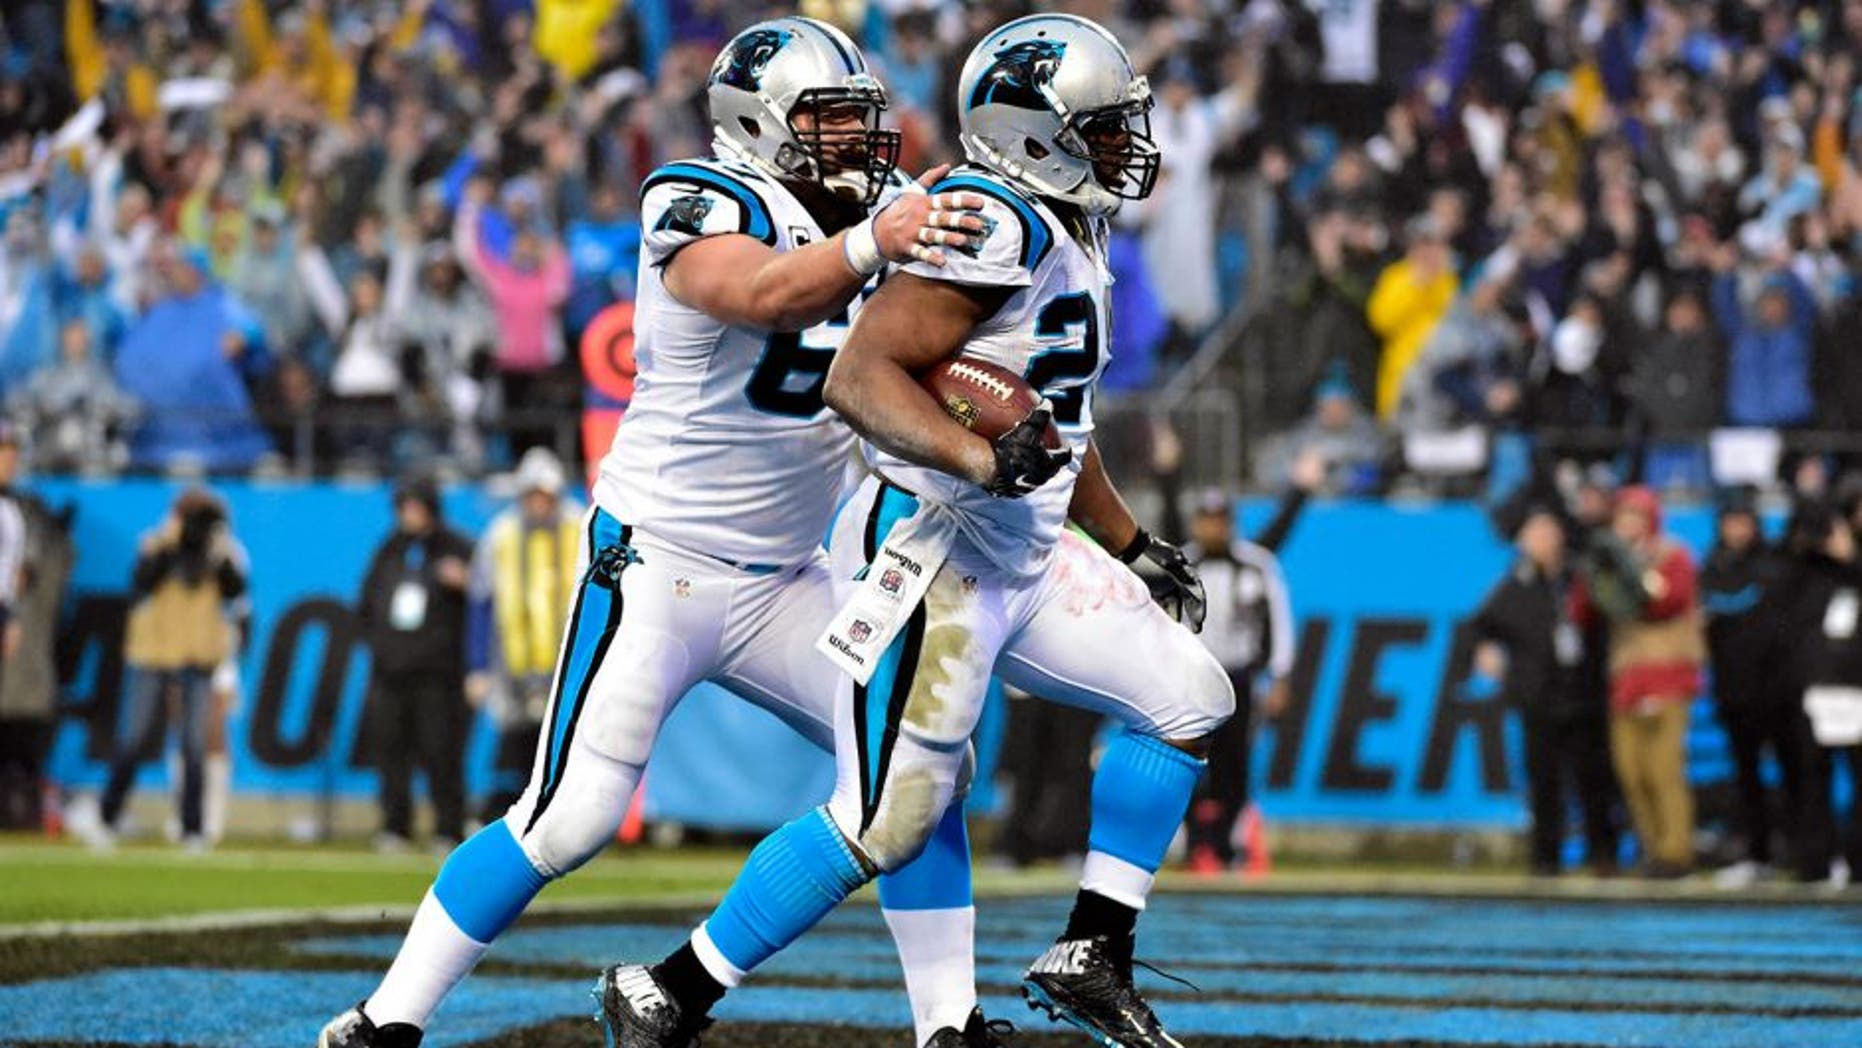 Jan 3, 2015; Charlotte, NC, USA; Carolina Panthers running back Jonathan Stewart (28) celebrates a touchdown with center Ryan Kalil (67) during the first quarter against the Arizona Cardinals in the 2014 NFC Wild Card playoff football game at Bank of America Stadium. Mandatory Credit: Bob Donnan-USA TODAY Sports